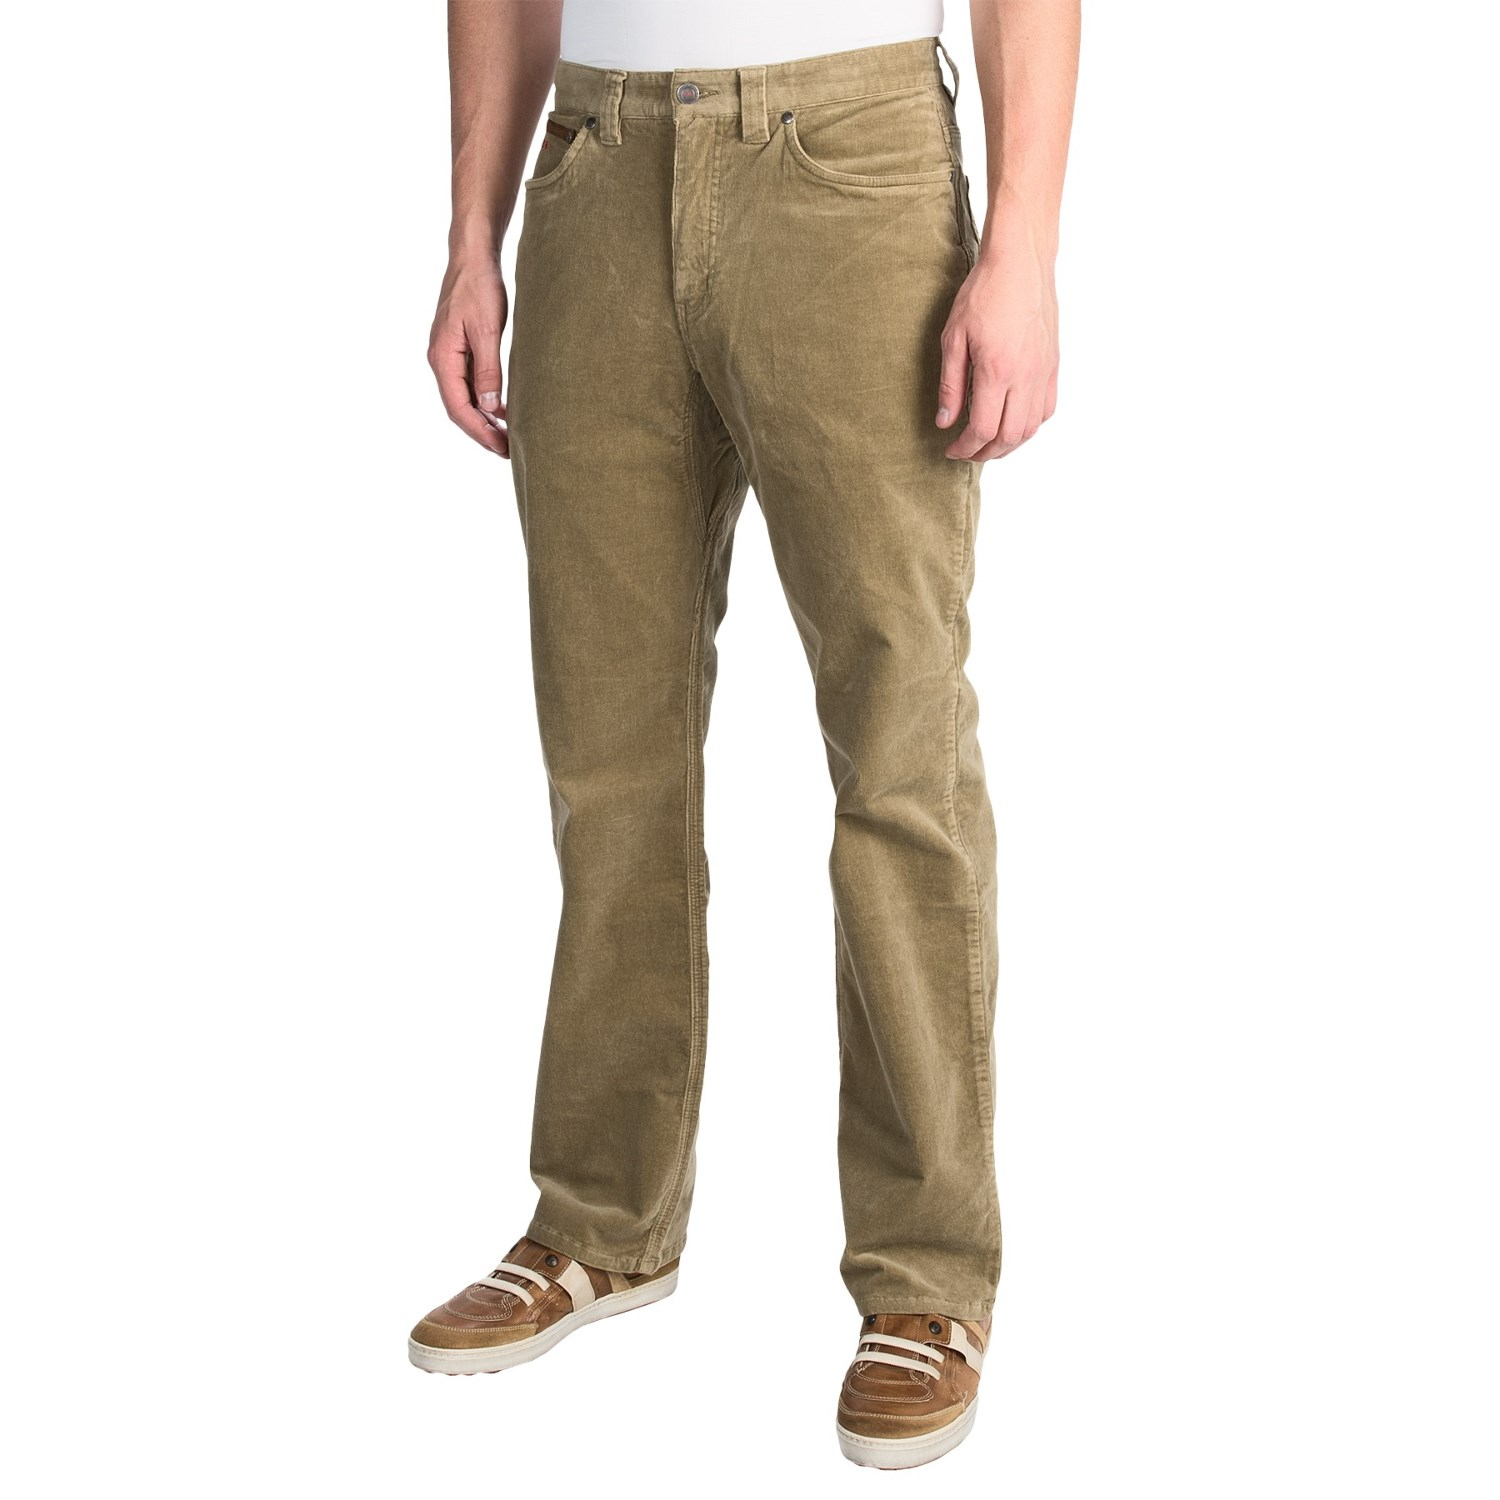 Relaxed Fit Corduroy Pants - White Pants 2016